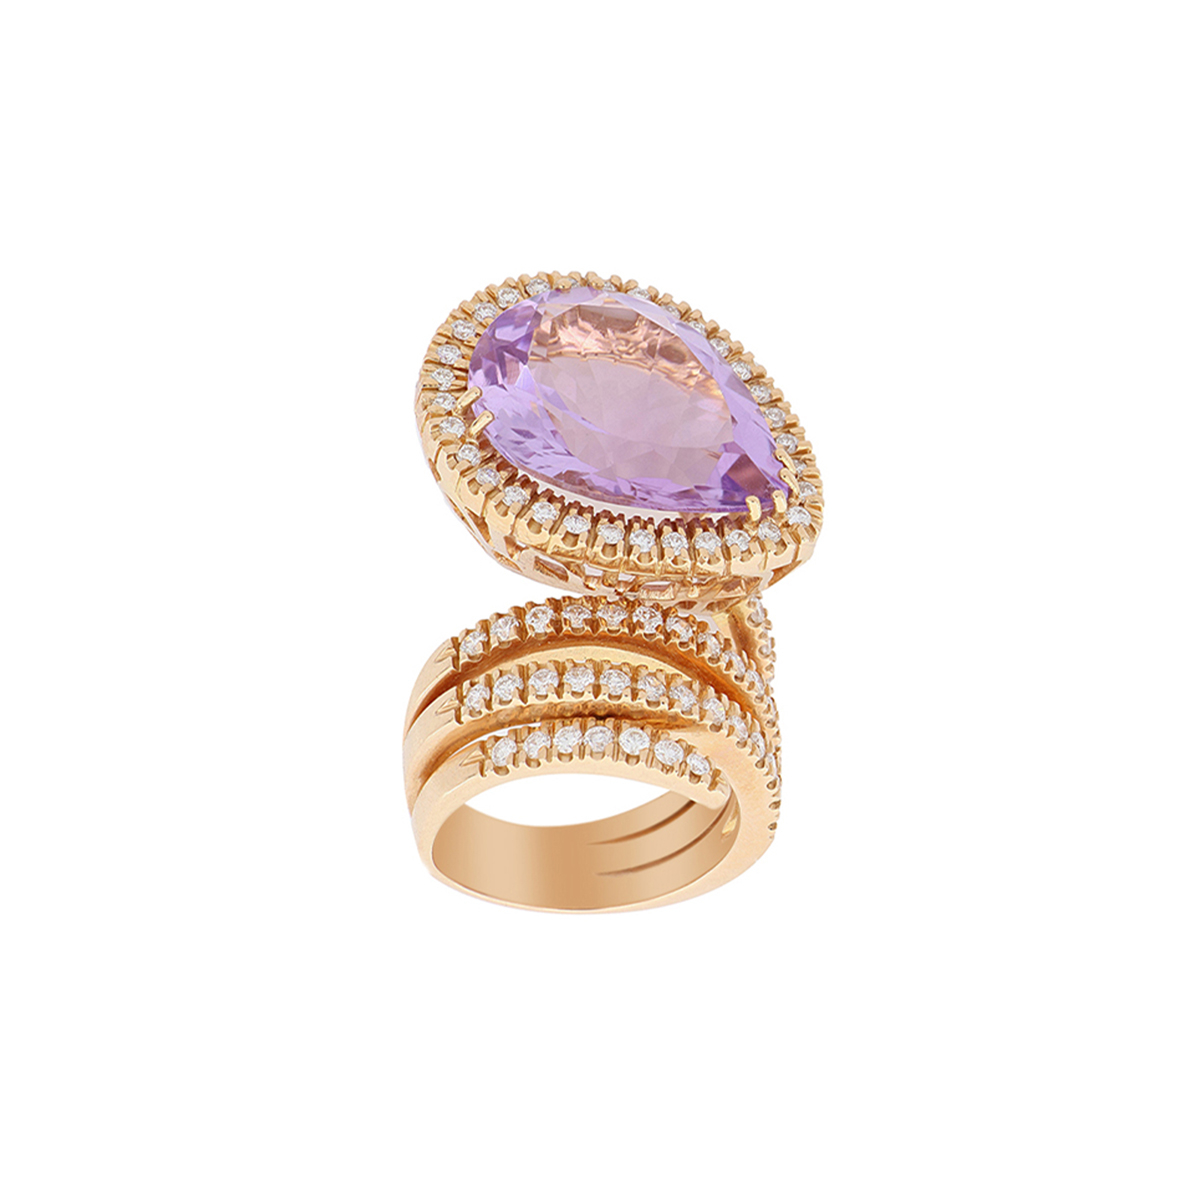 Spiral Ring with Pear-Cut Amethyst and Diamond Halo